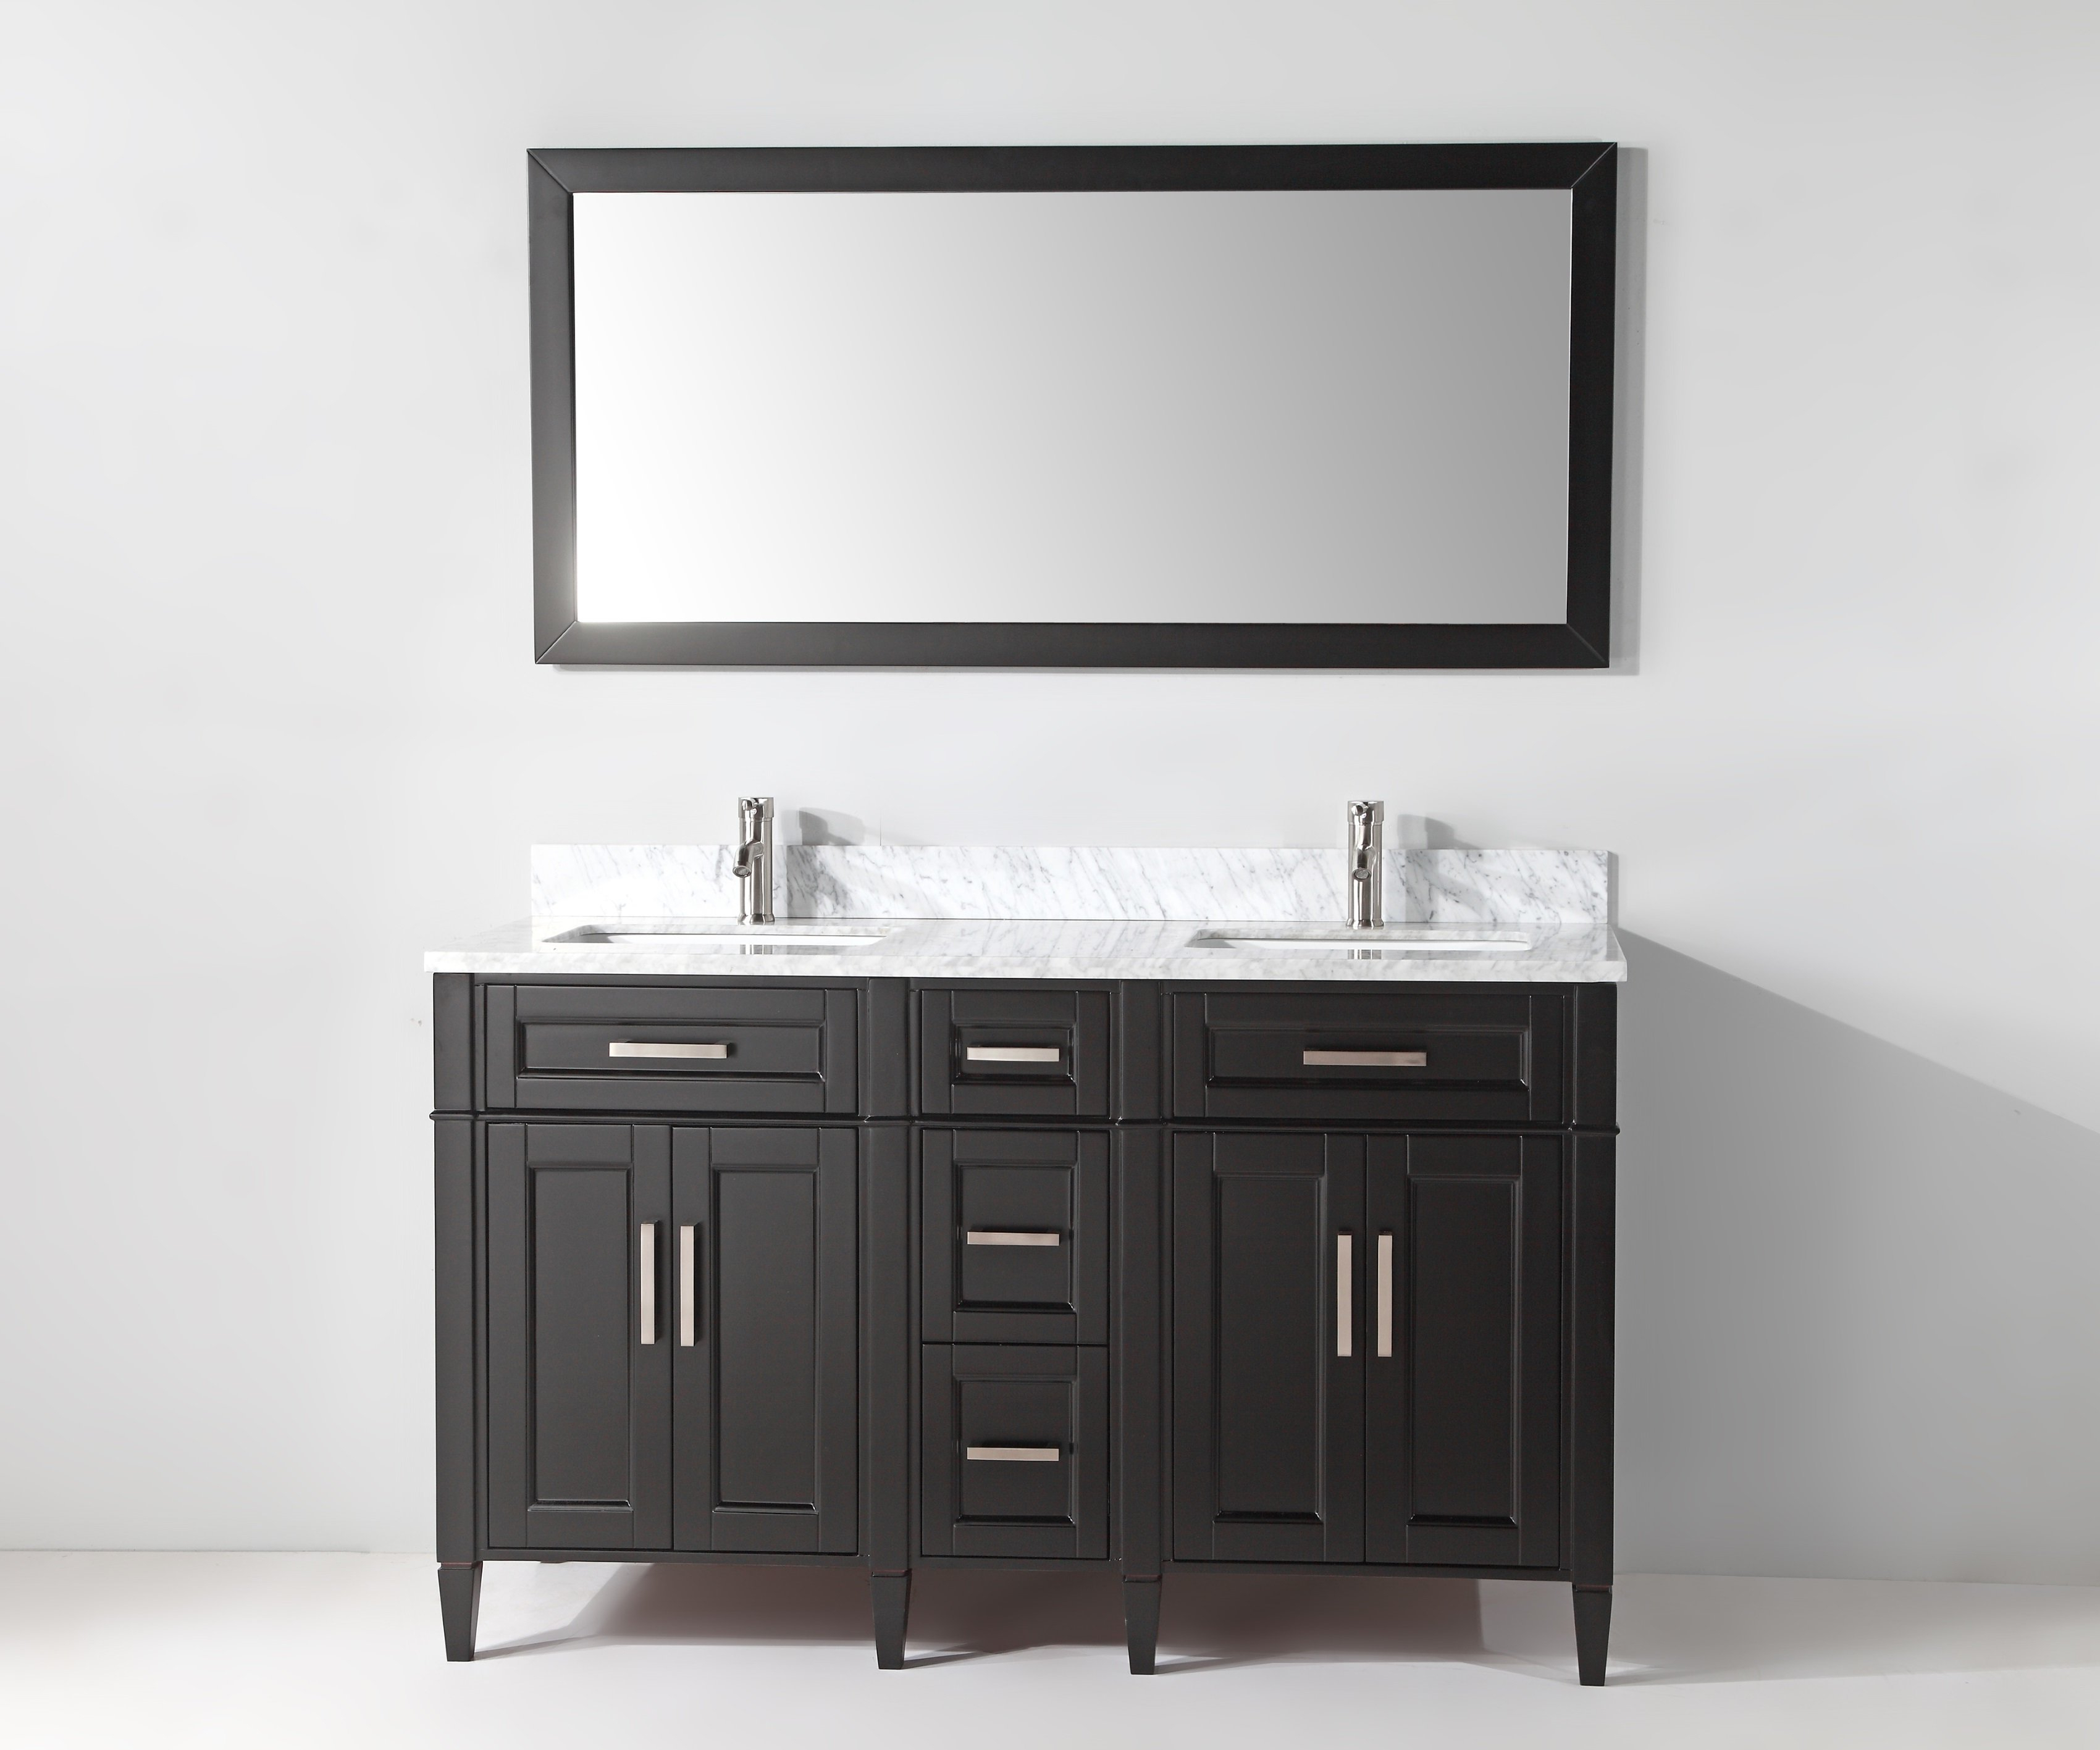 "Landover Rustic Distressed Bathroom/vanity Mirrors Within Most Popular Monadnock 60"" Double Bathroom Vanity Set With Mirror & Reviews (View 12 of 20)"